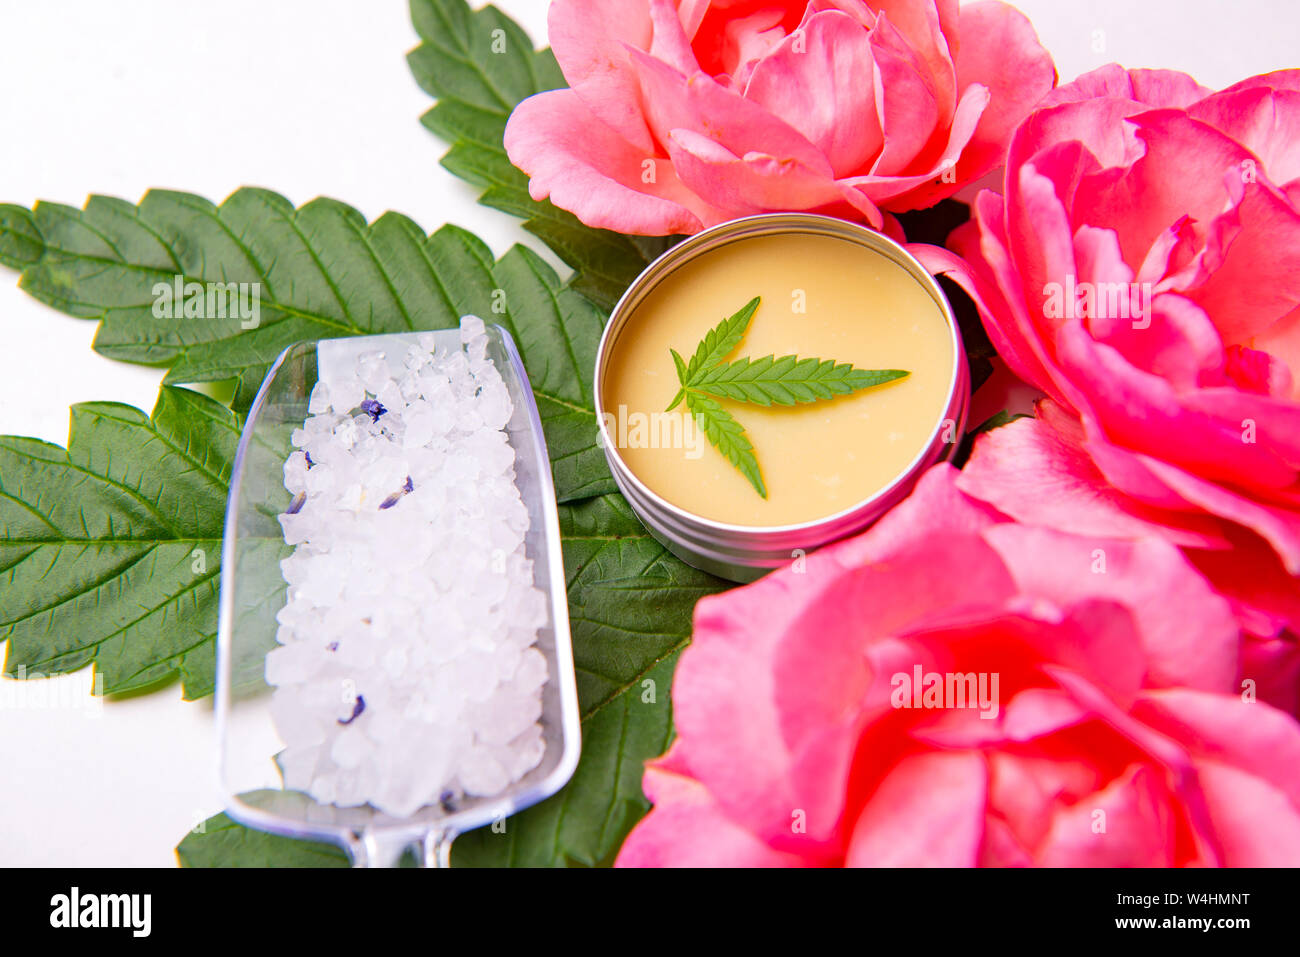 Cannabis infused beauty products with roses, merijuana leaves and CBD salve over white background Stock Photo